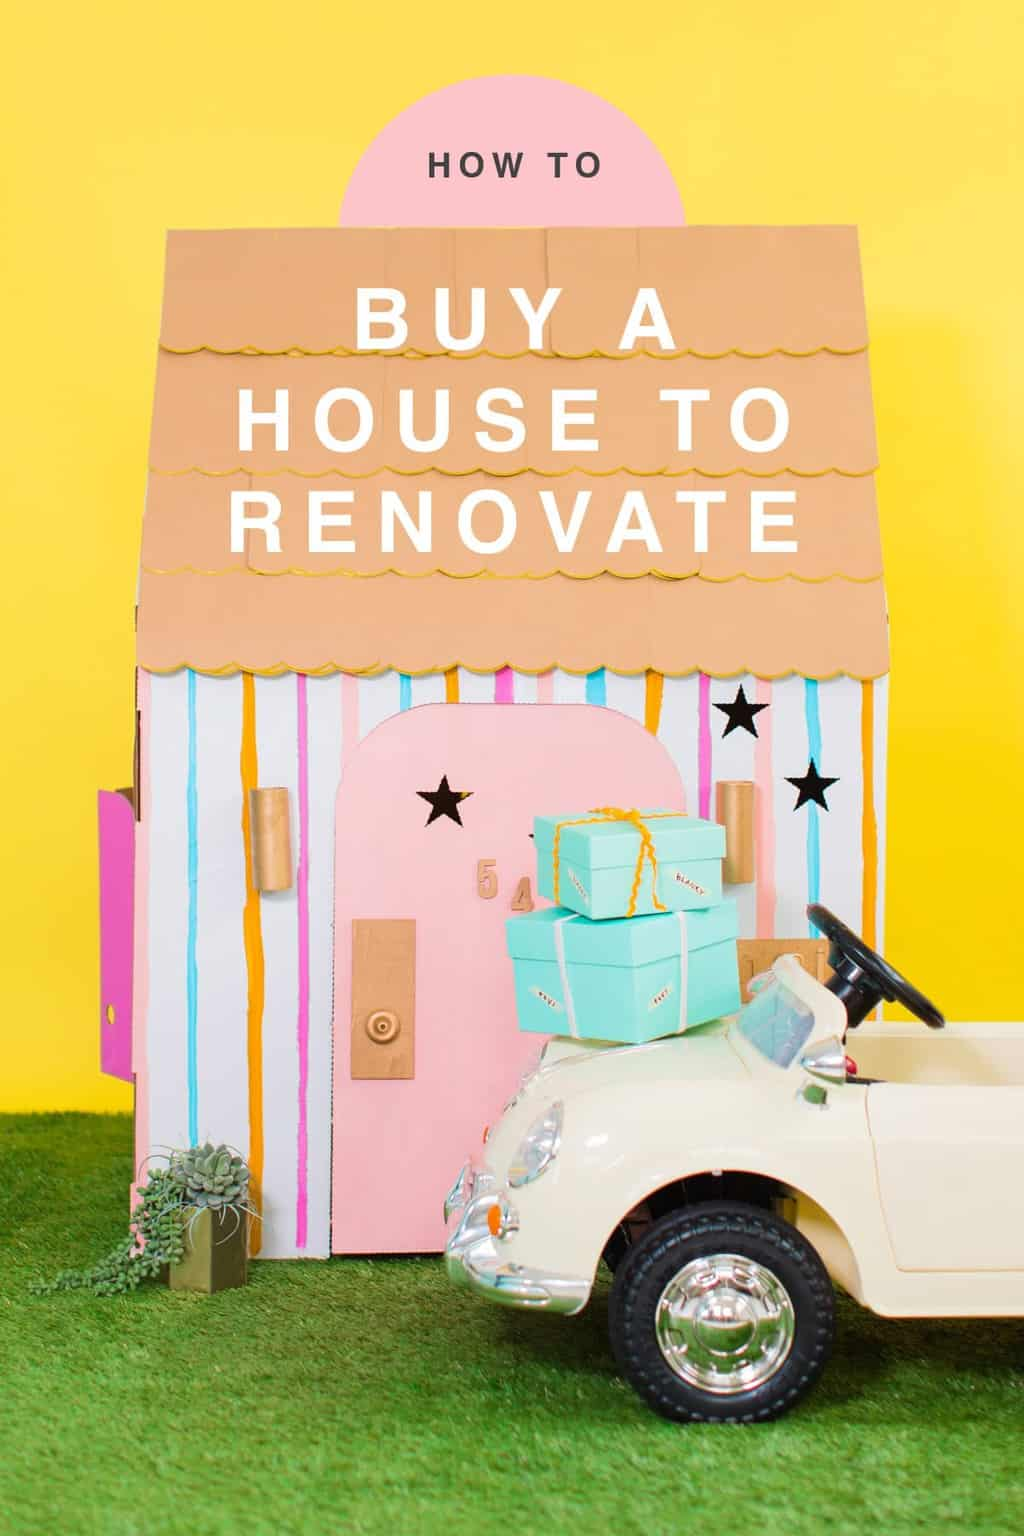 The cutest baby house you've ever seen! Sugar & Cloth Casa: How We Went About Buying A House to Renovate by top Houston lifestyle blogger Ashley Rose of Sugar & Cloth #renovate #home #interiors #buying #house #fixerupper #howto